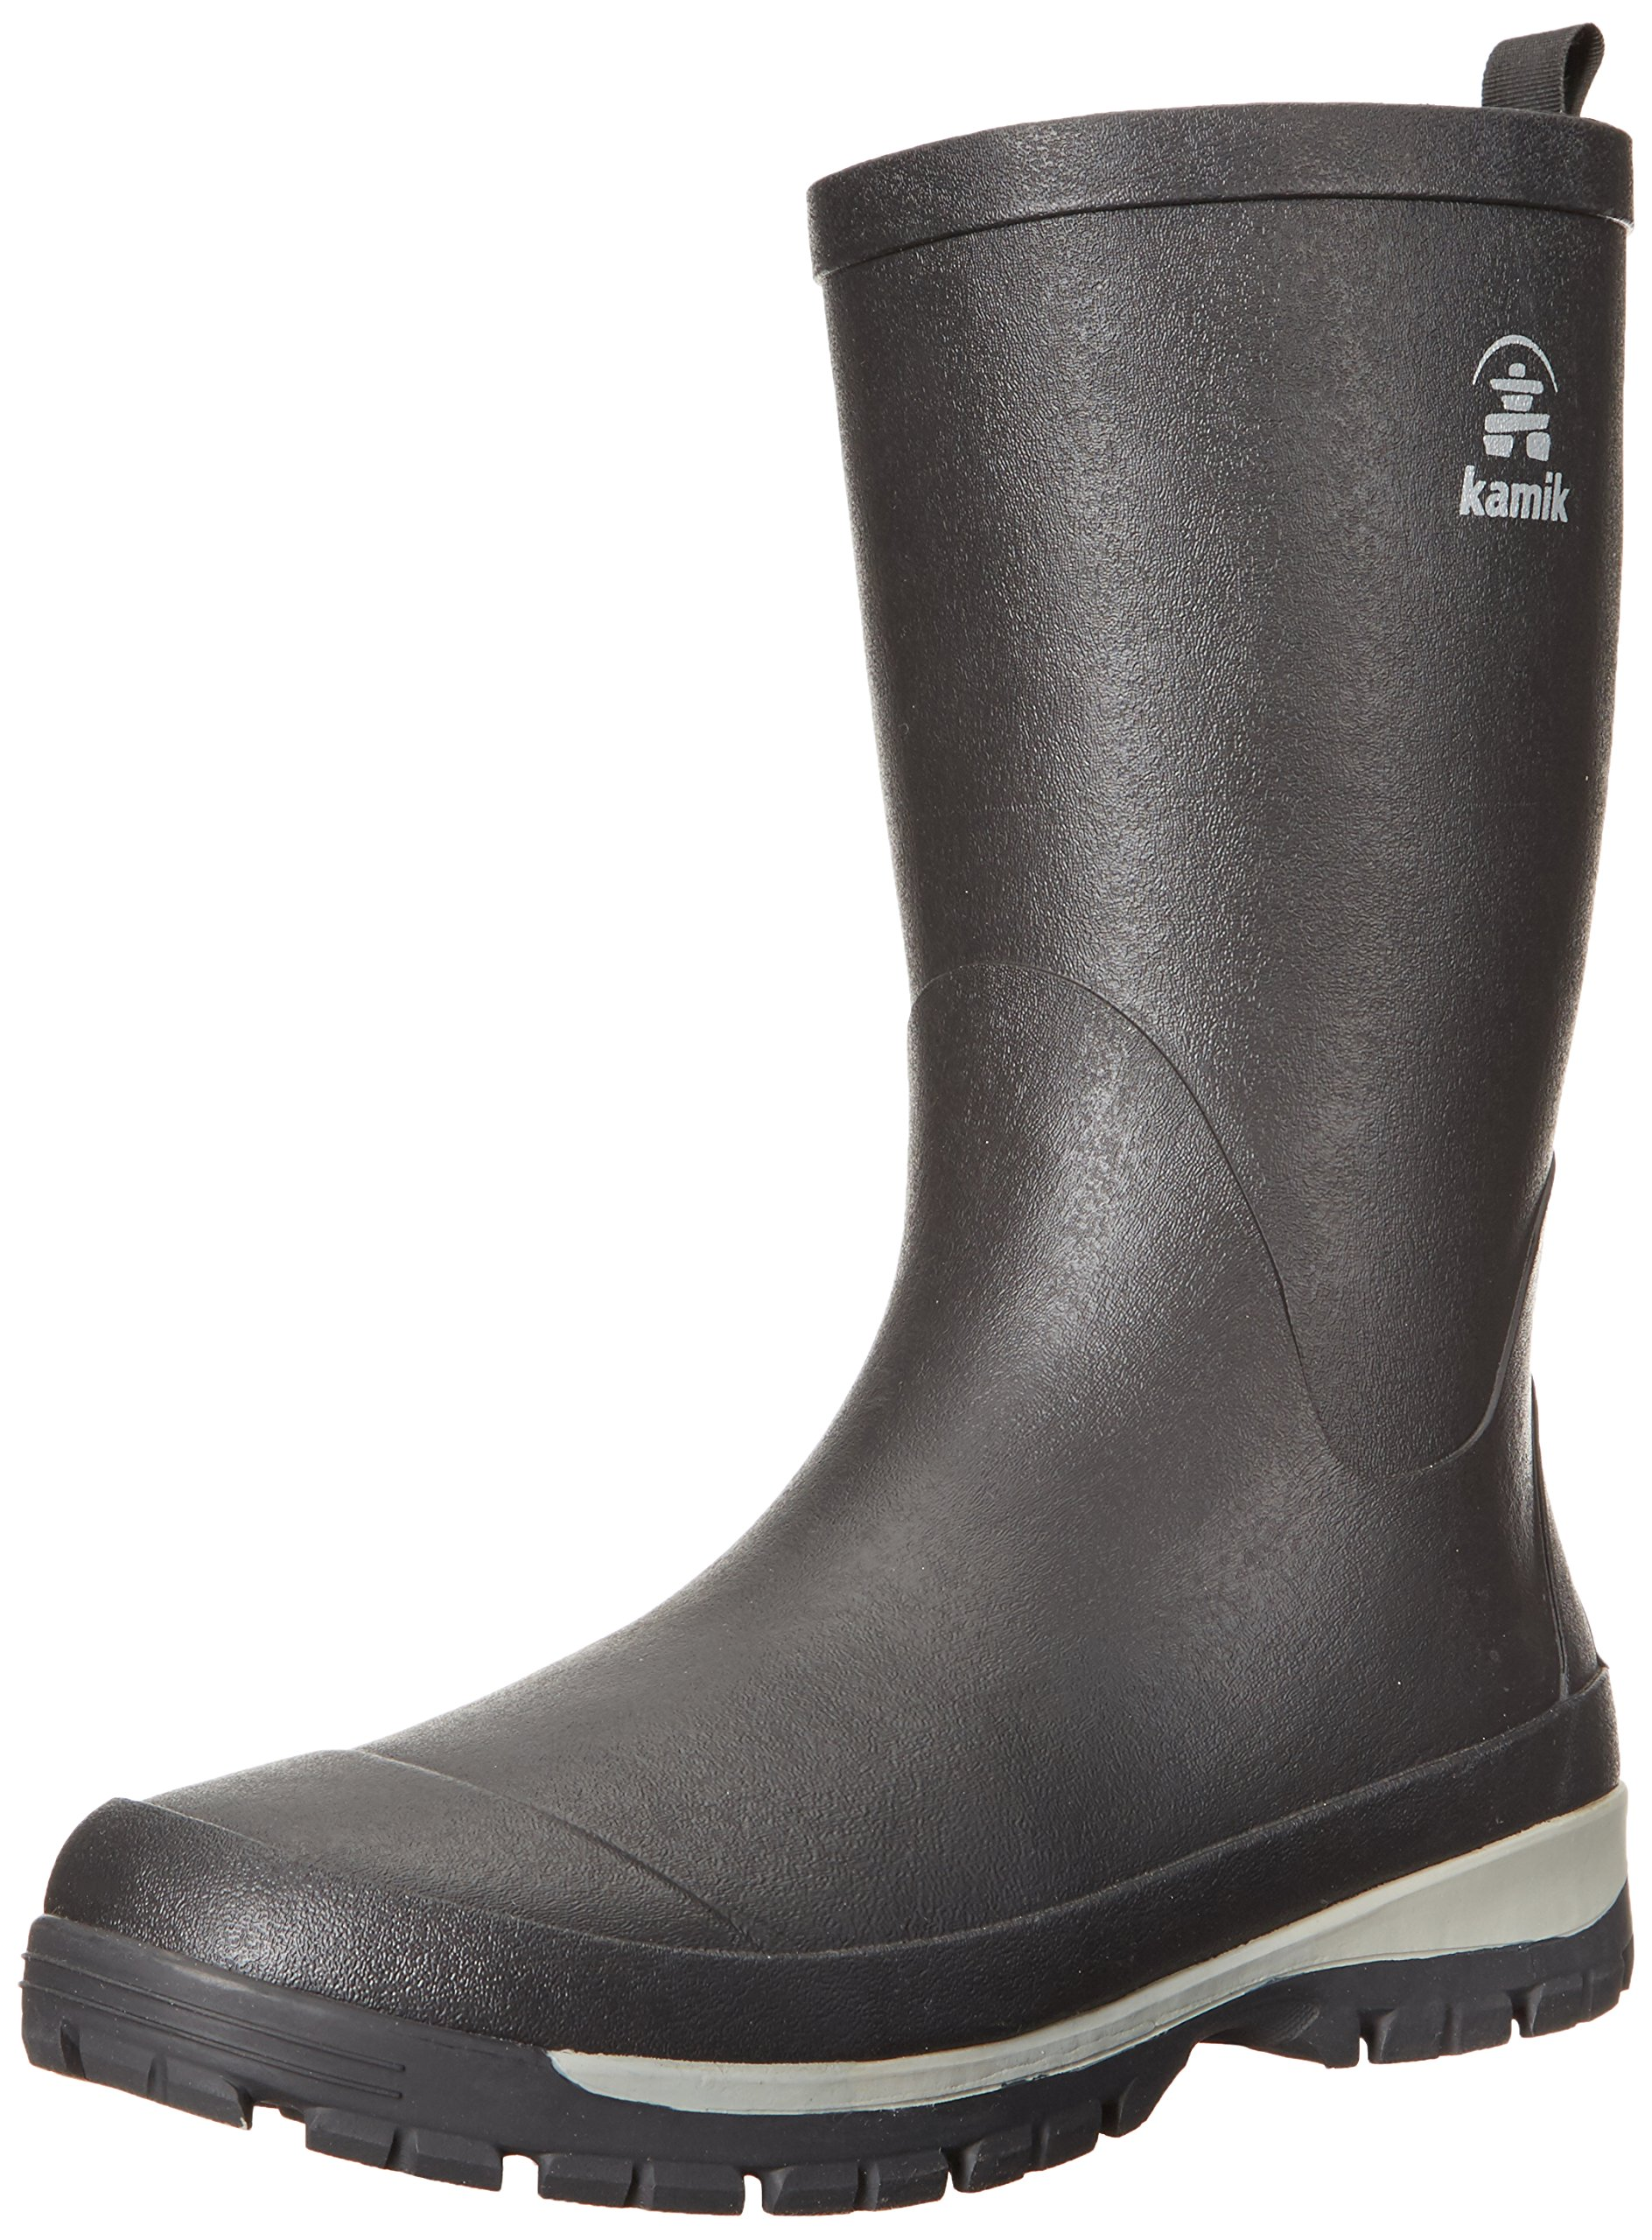 17a42402d9067 Kamik Men's Lars Rain Boot, Black, 9 Medium US | Amazon